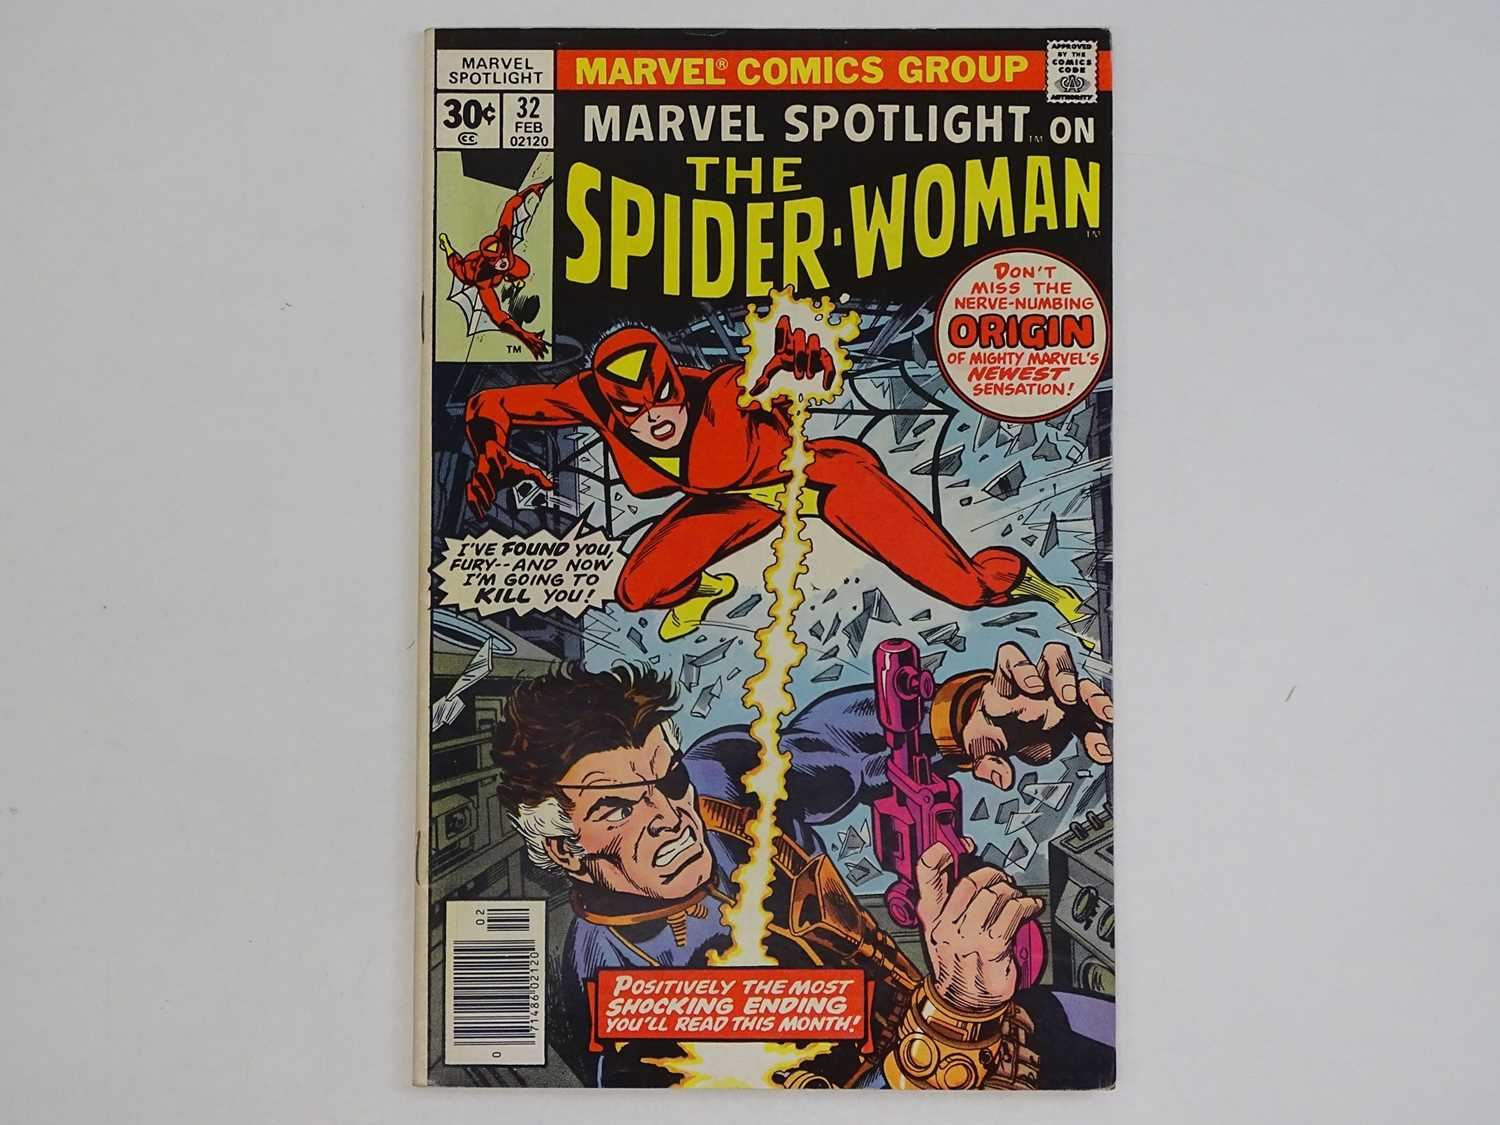 MARVEL SPOTLIGHT: SPIDER-WOMAN #32 - (1977 - MARVEL) - Origin and First appearance of Spider-Woman +